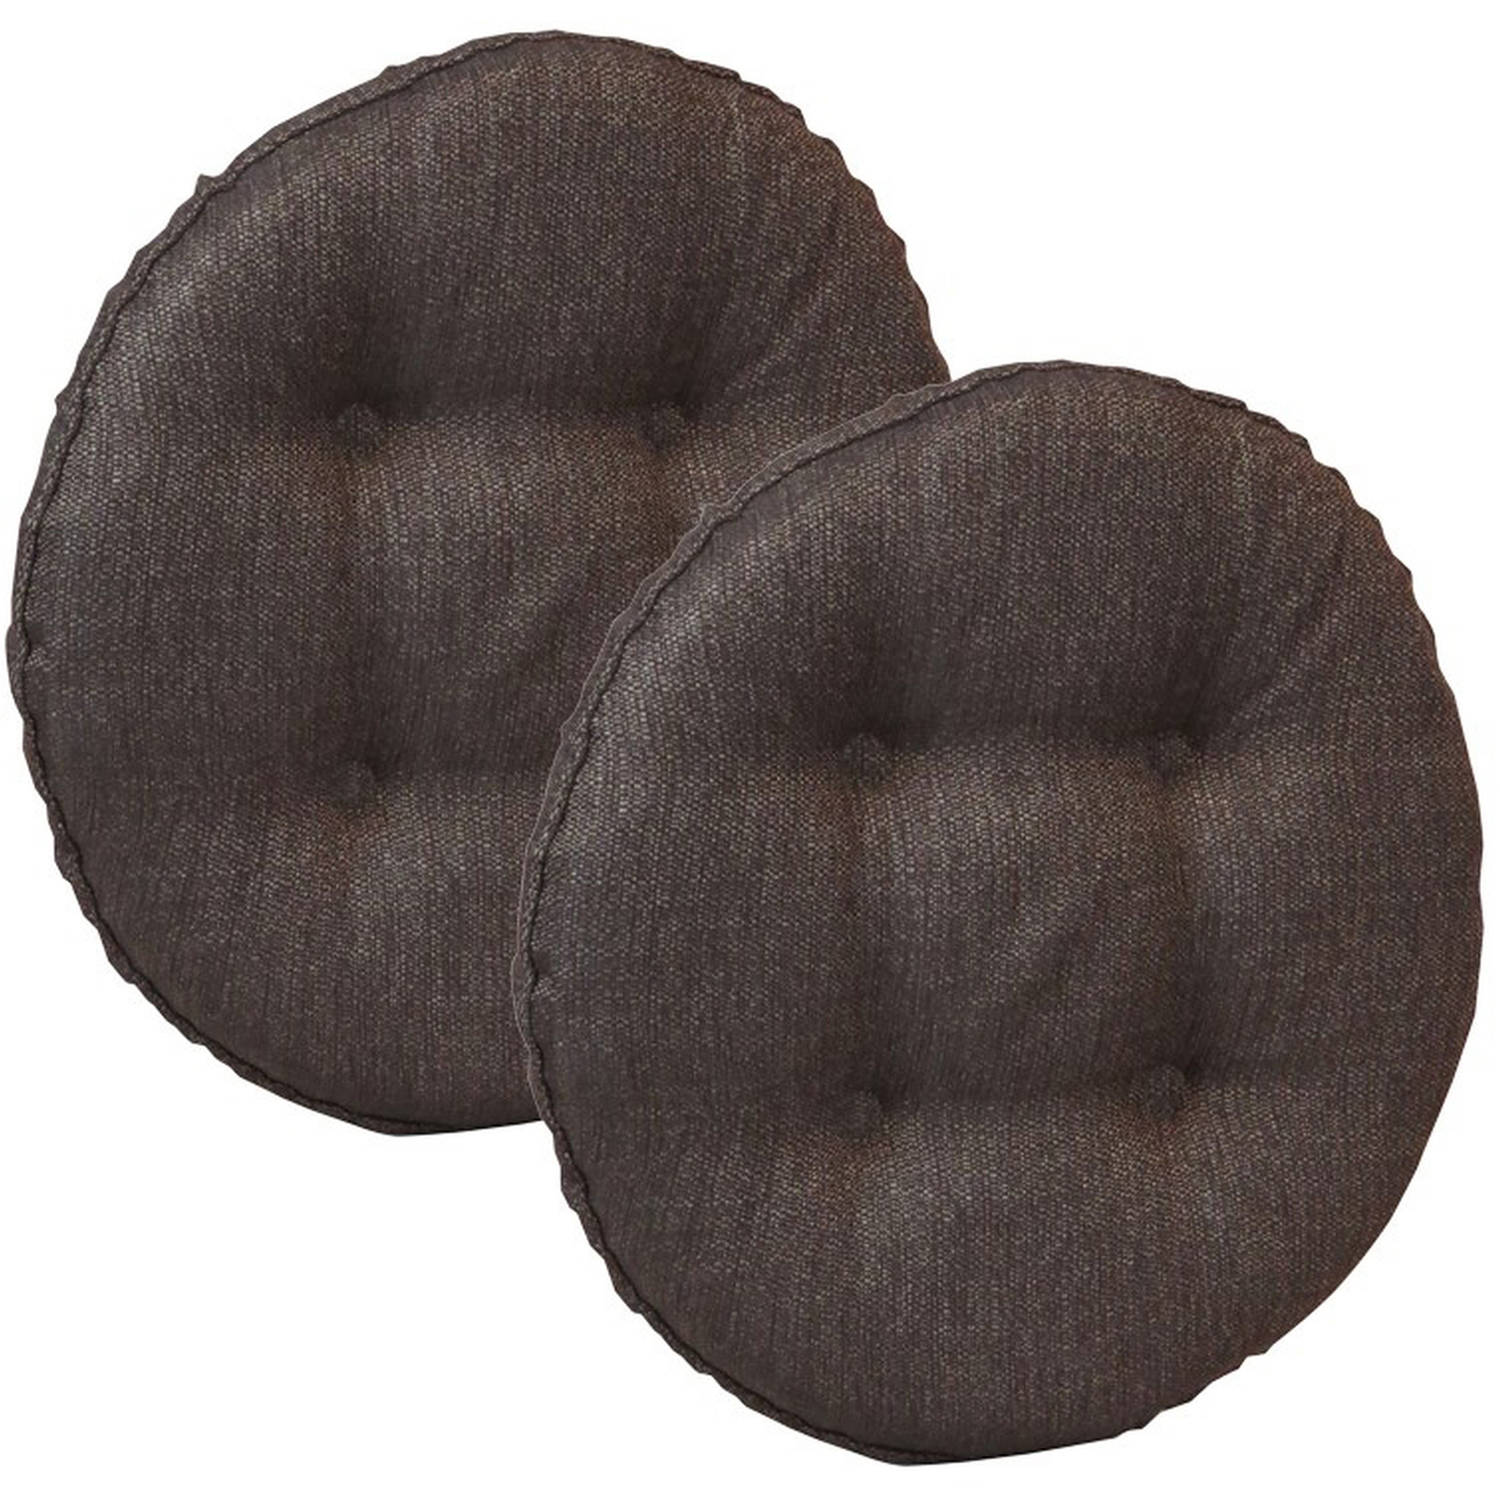 "Gripper Non-Slip 14"" x 14"" Omega Tufted Barstool Cushions, Set of 2"